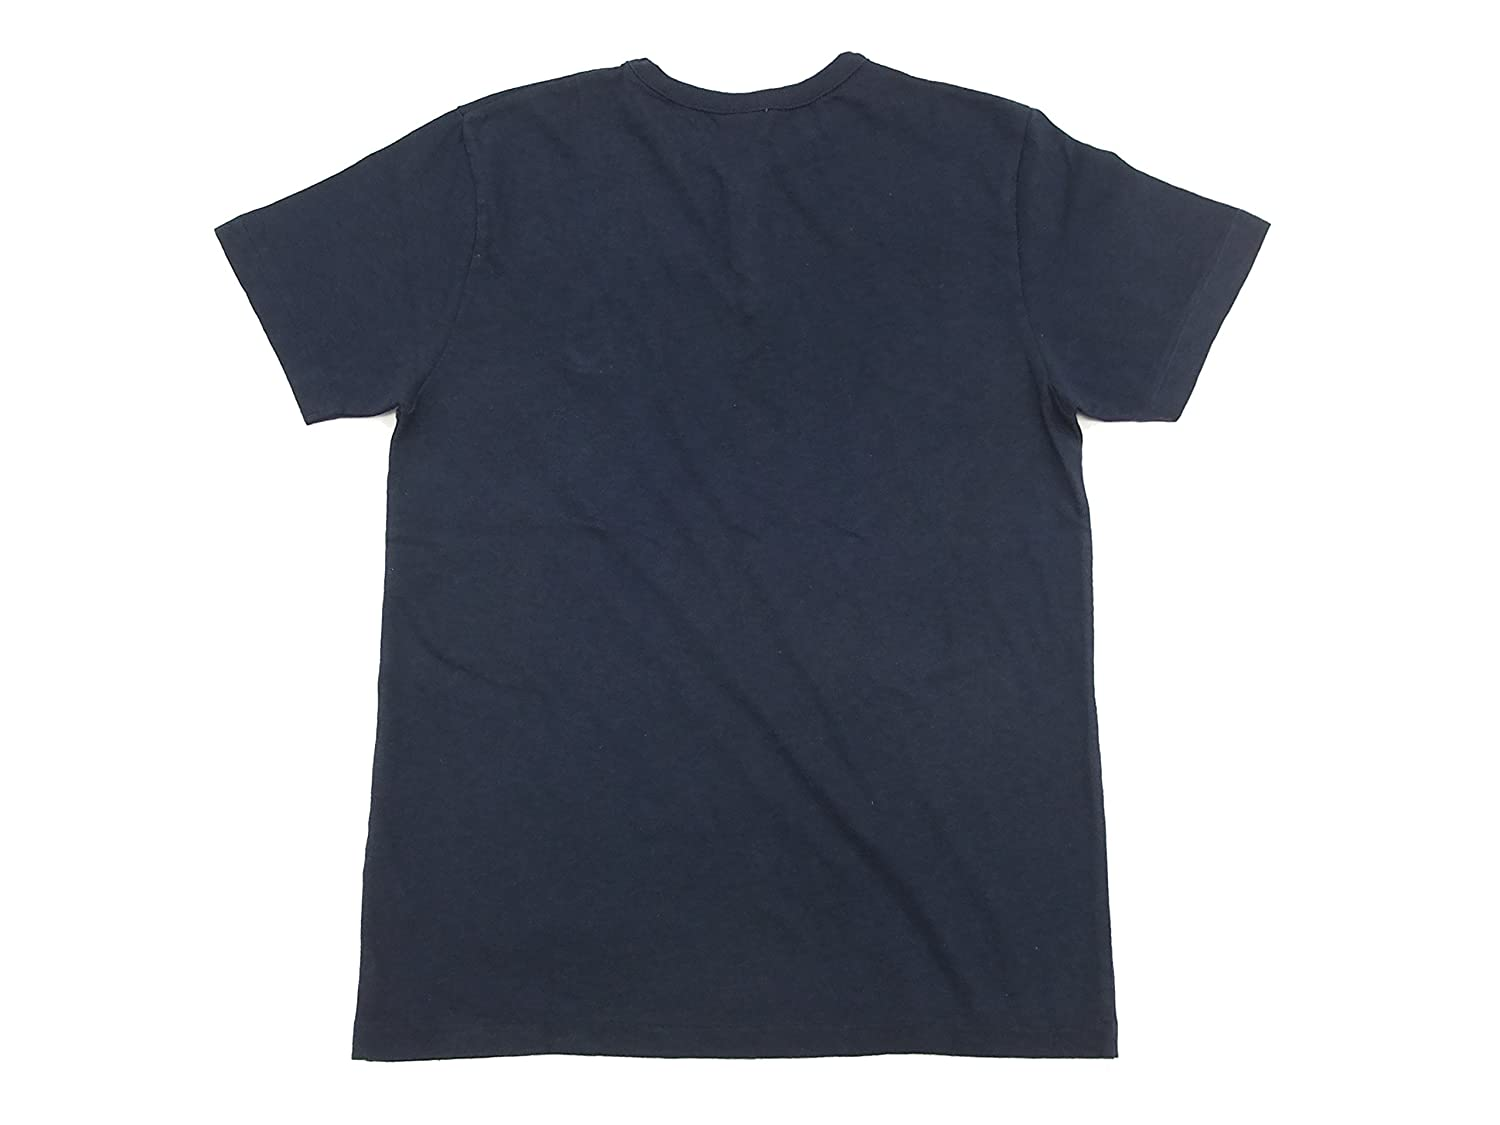 CHESWICK Henley T-shirt CH77312 Mens Short Sleeve Tee Navy